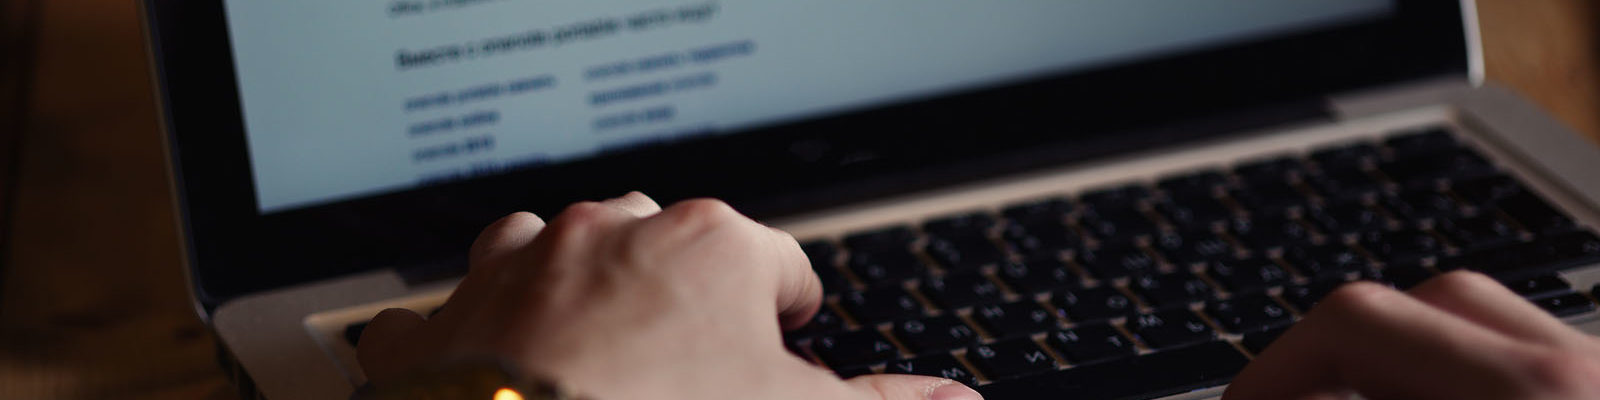 Graphic: What is doxxing? Photo of a man looking up info about another person online